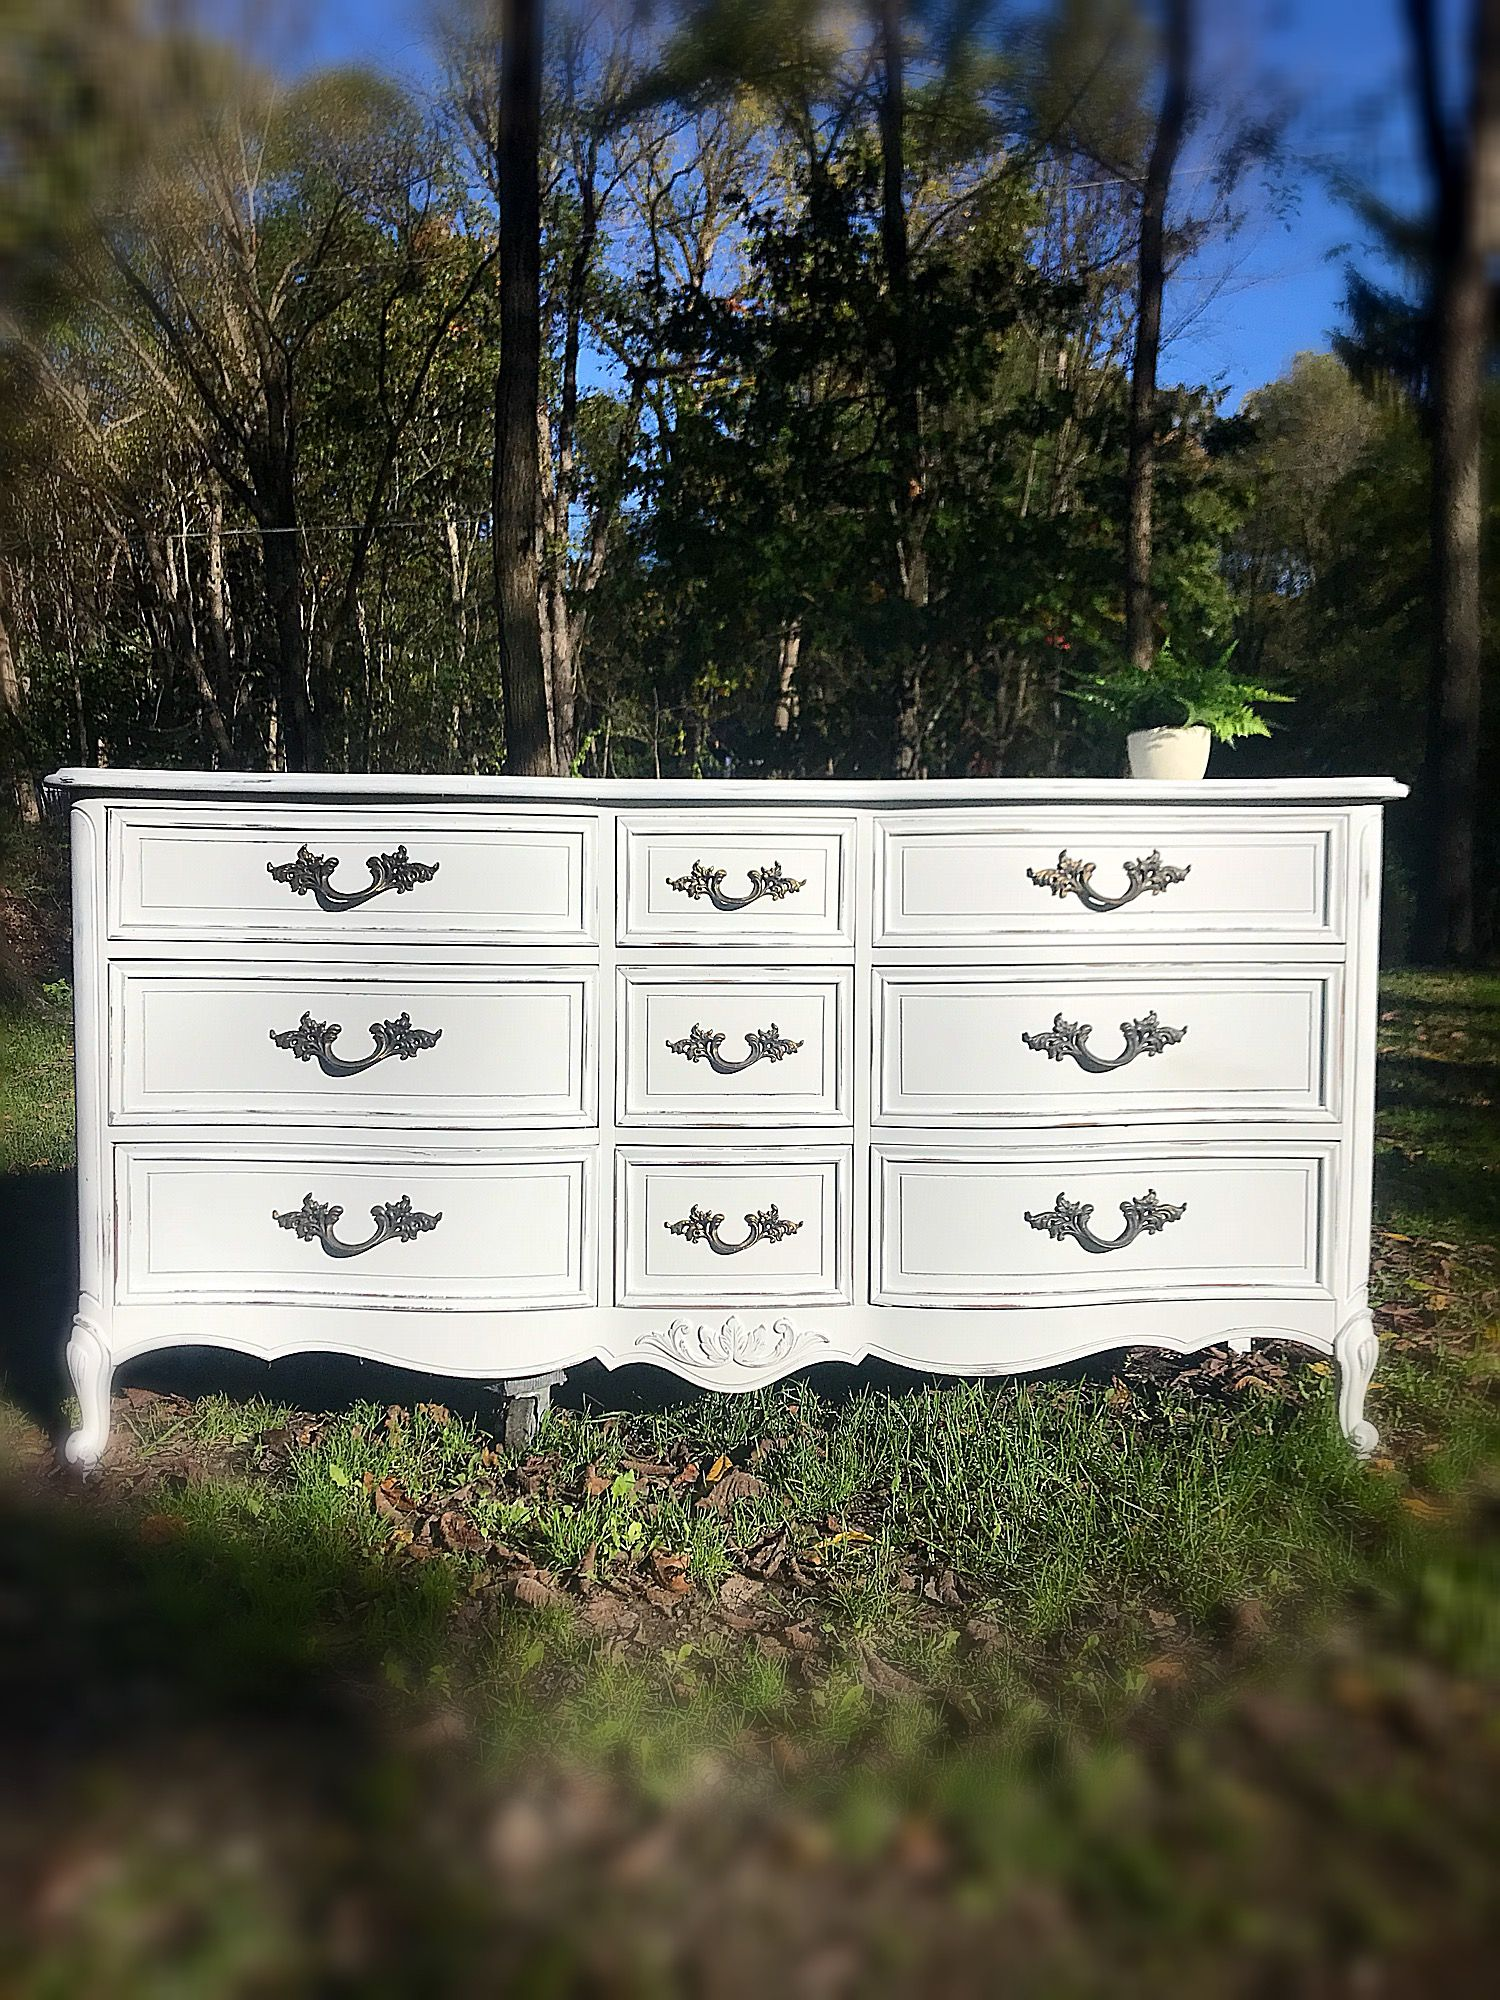 Unique White Vintage Rustic French Cottage Shabby Chic French Provincial Bedroom Dresser B French Shabby Chic Furniture French Shabby Chic Shabby Furniture